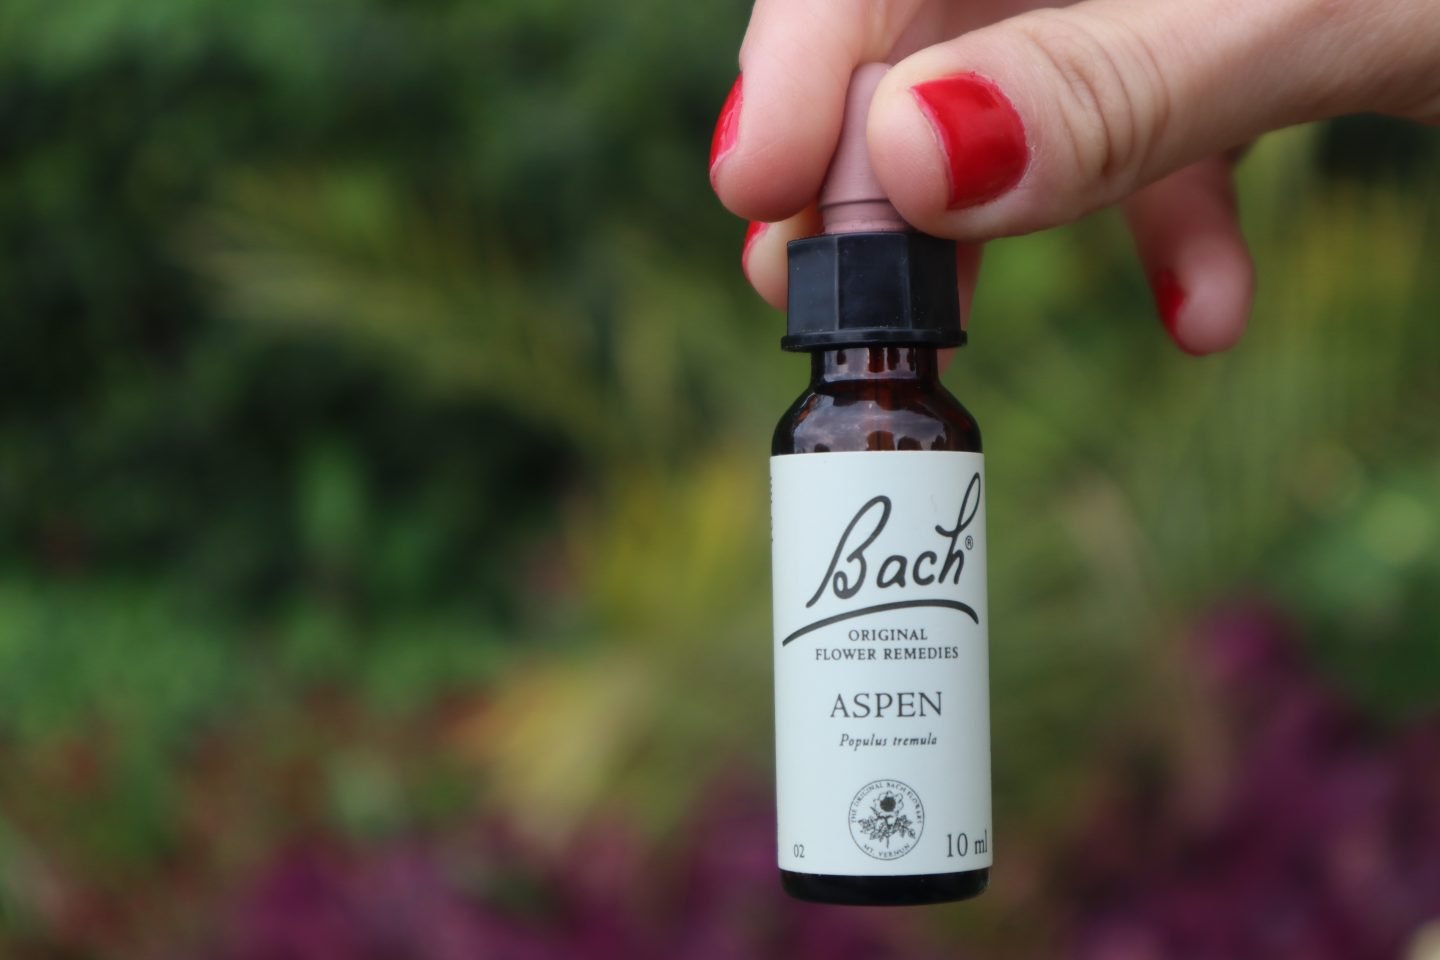 Aspen - Bach Flower Remedies- Helps with Anxiety